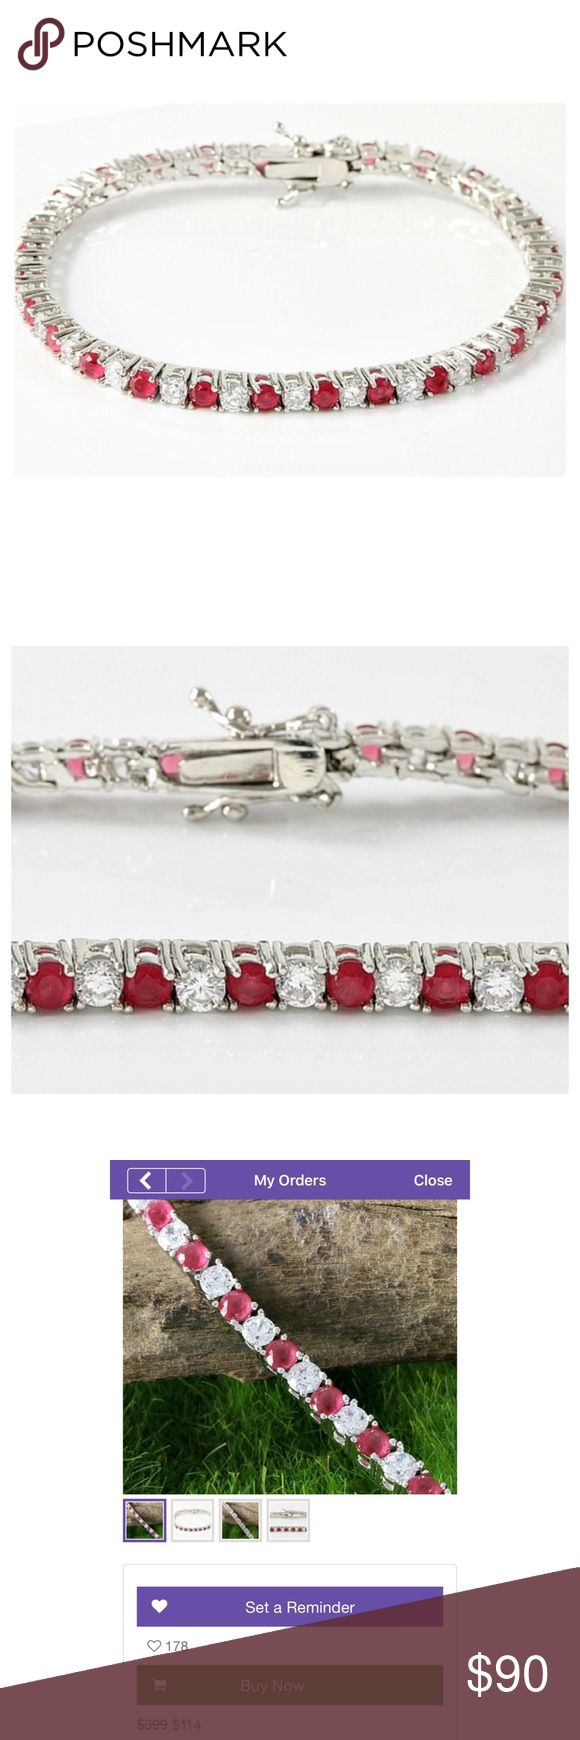 """4.25ctw Genuine Ruby & Sapphire Bracelet ▪Price includes selling fees▪ 🔹Save by Bundling or Visiting my Website🔹 📌Read my Listing with """"Buying Policies"""" BEFORE purchasing items📌 🚫Holds, Trades, & Low-Ballers Will Be Blocked🚫  Class, Beauty, Style, Shimmer, & Shine This Bracelet has it all!  Retail $399 + tax ($434.50)  Samuelle & Co Bracelet Total Carat Weight: 4.25 Gemstones: Genuine Ruby & White Sapphire Type: Tennis Bracelet Length: 7"""" Weight: 9.3g Clasp: Open Box  Metal: 14k White…"""